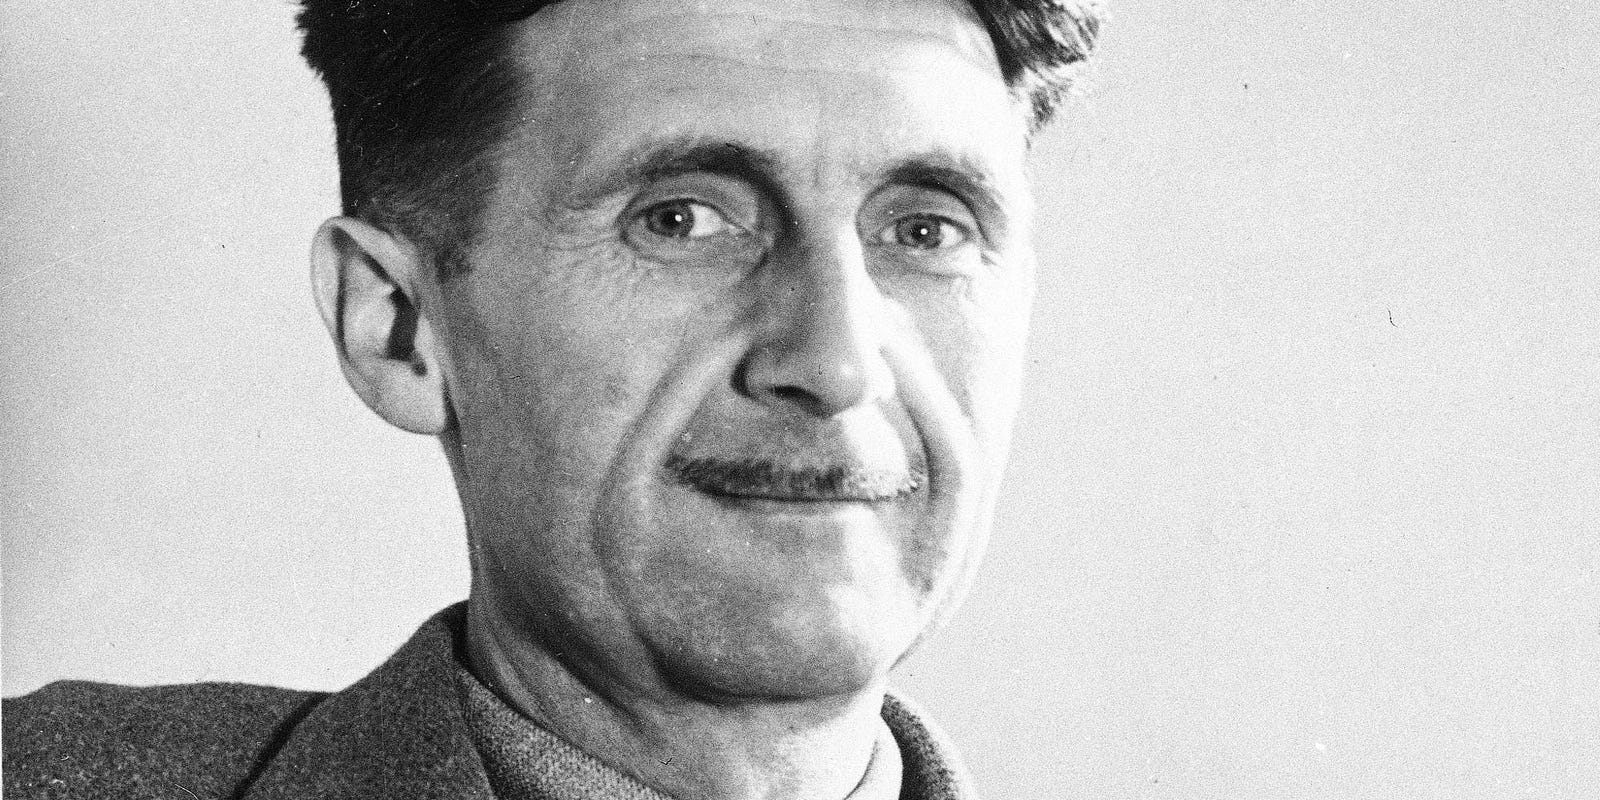 Fact check: Orwell didn't write people who 'elect corrupt politcians' are 'accomplices'